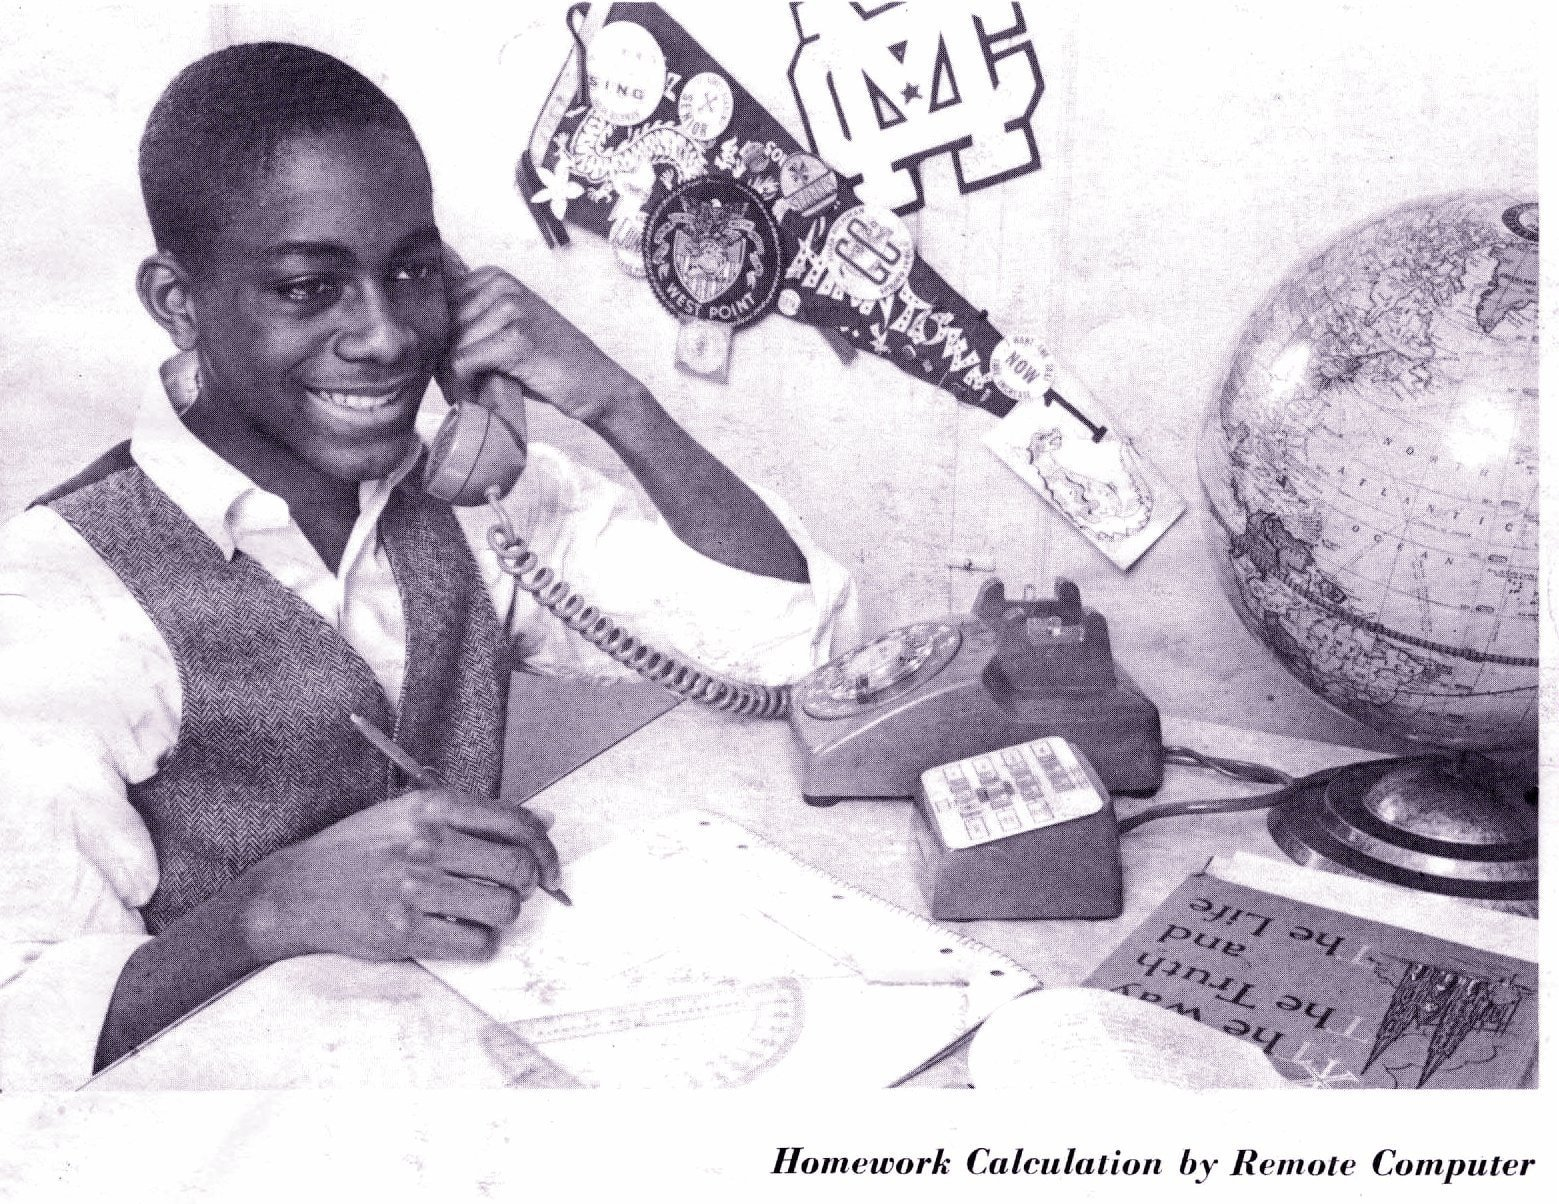 Homework calculation by remote computer (1970)